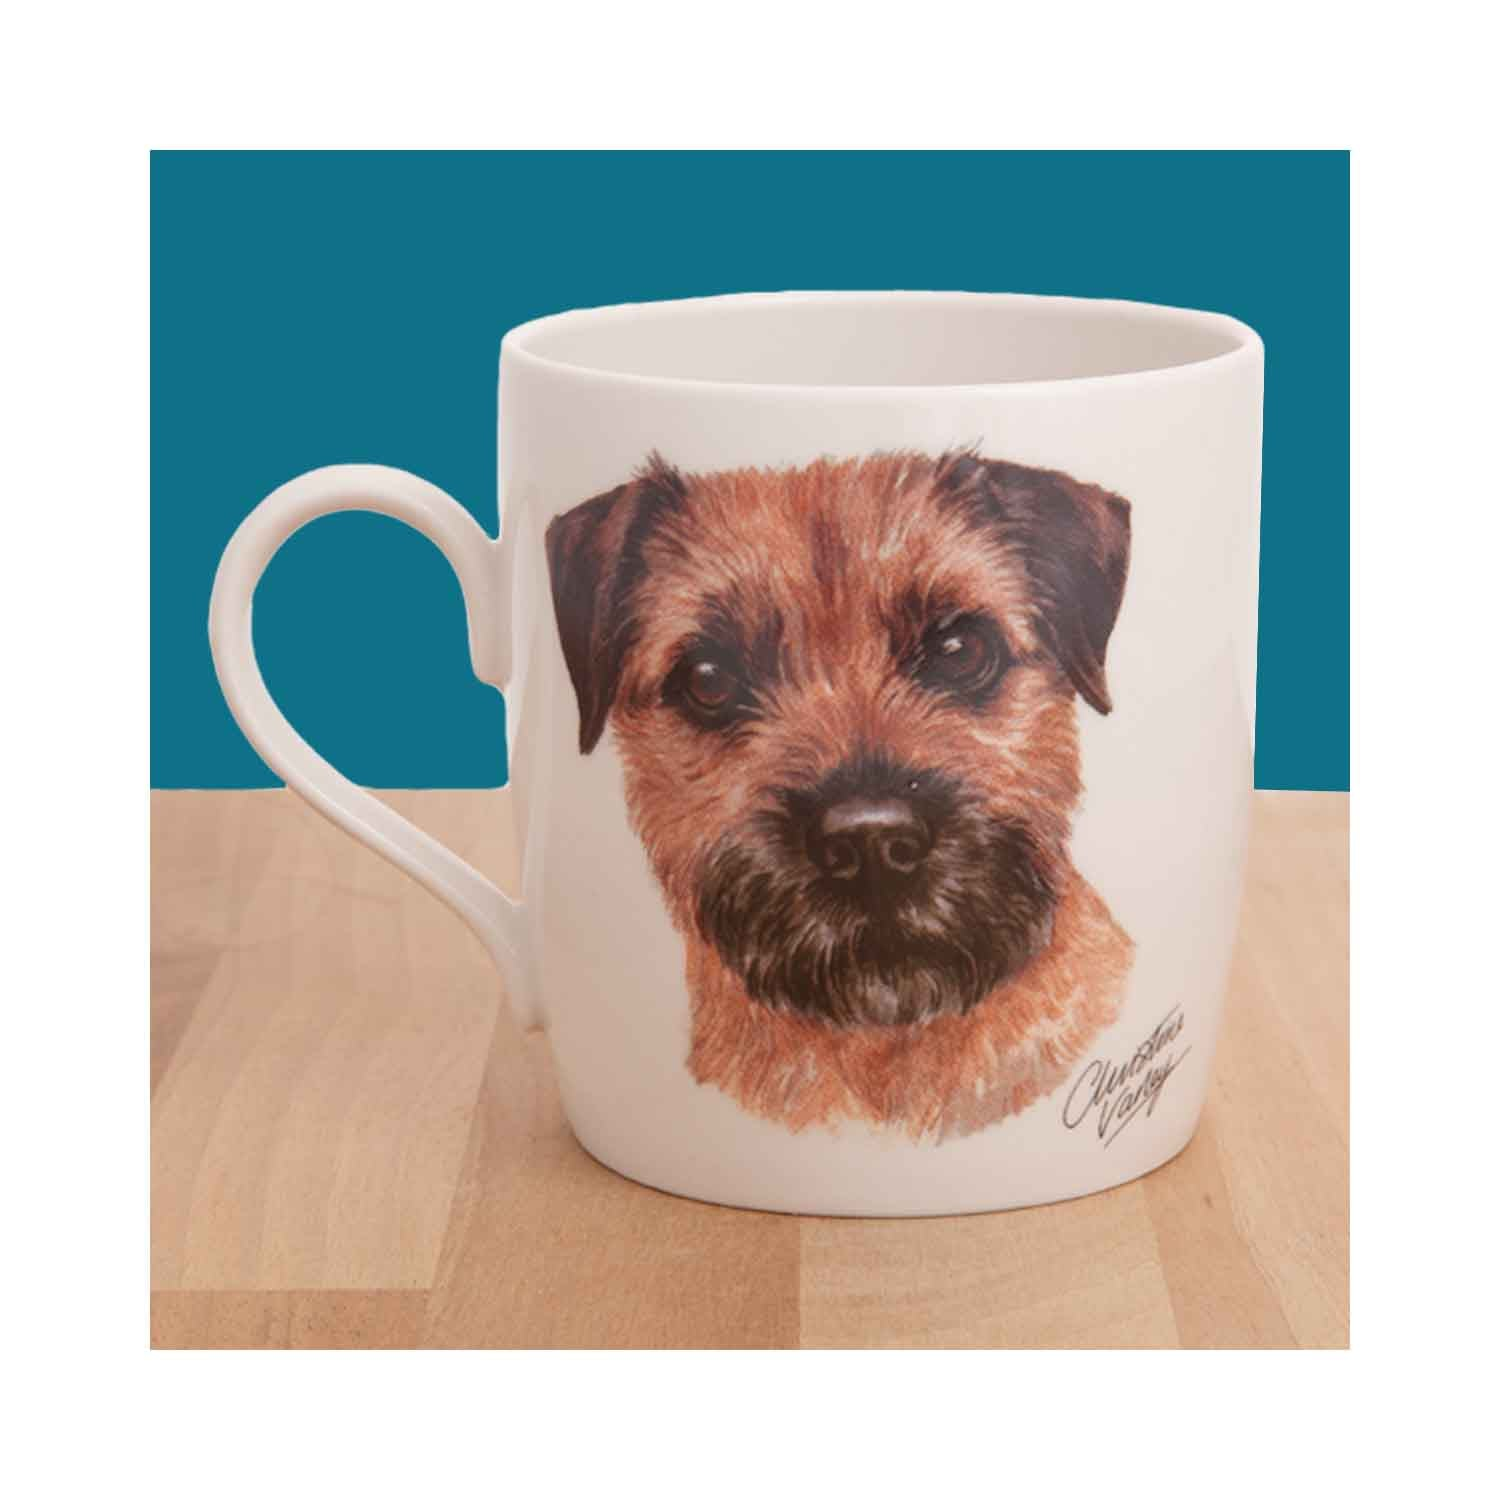 Dog Lover Gifts available at Dog Krazy Gifts - Border Terrier Waggy Dogz Mug, part of the range of Border Terrier themed gifts available from DogKrazyGifts.co.uk